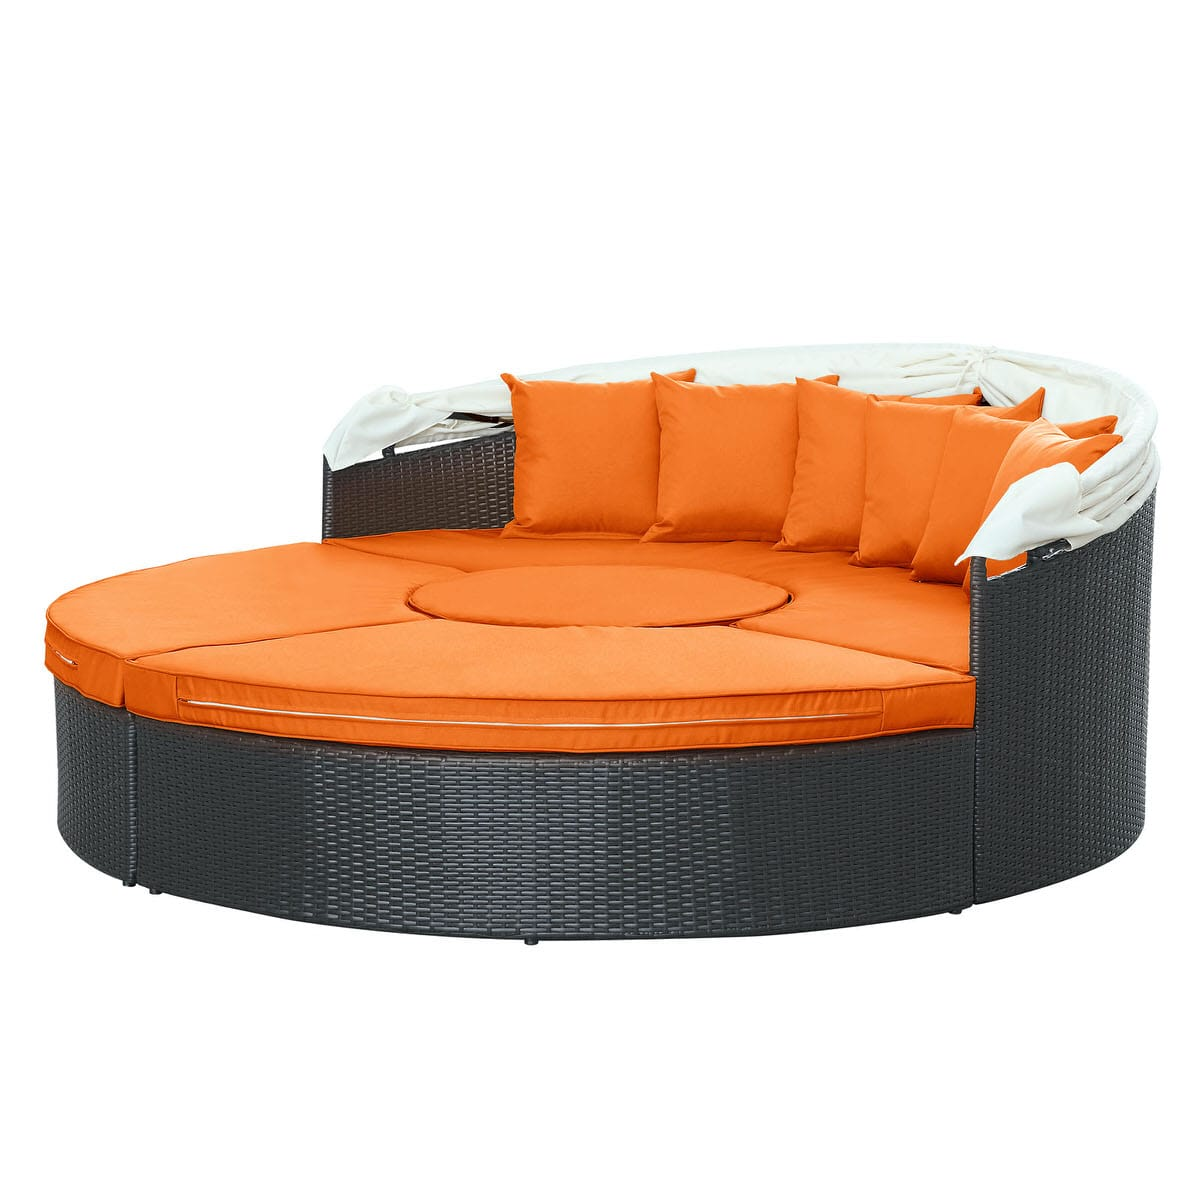 Quest canopy outdoor patio daybed espresso orange by modern living modern living